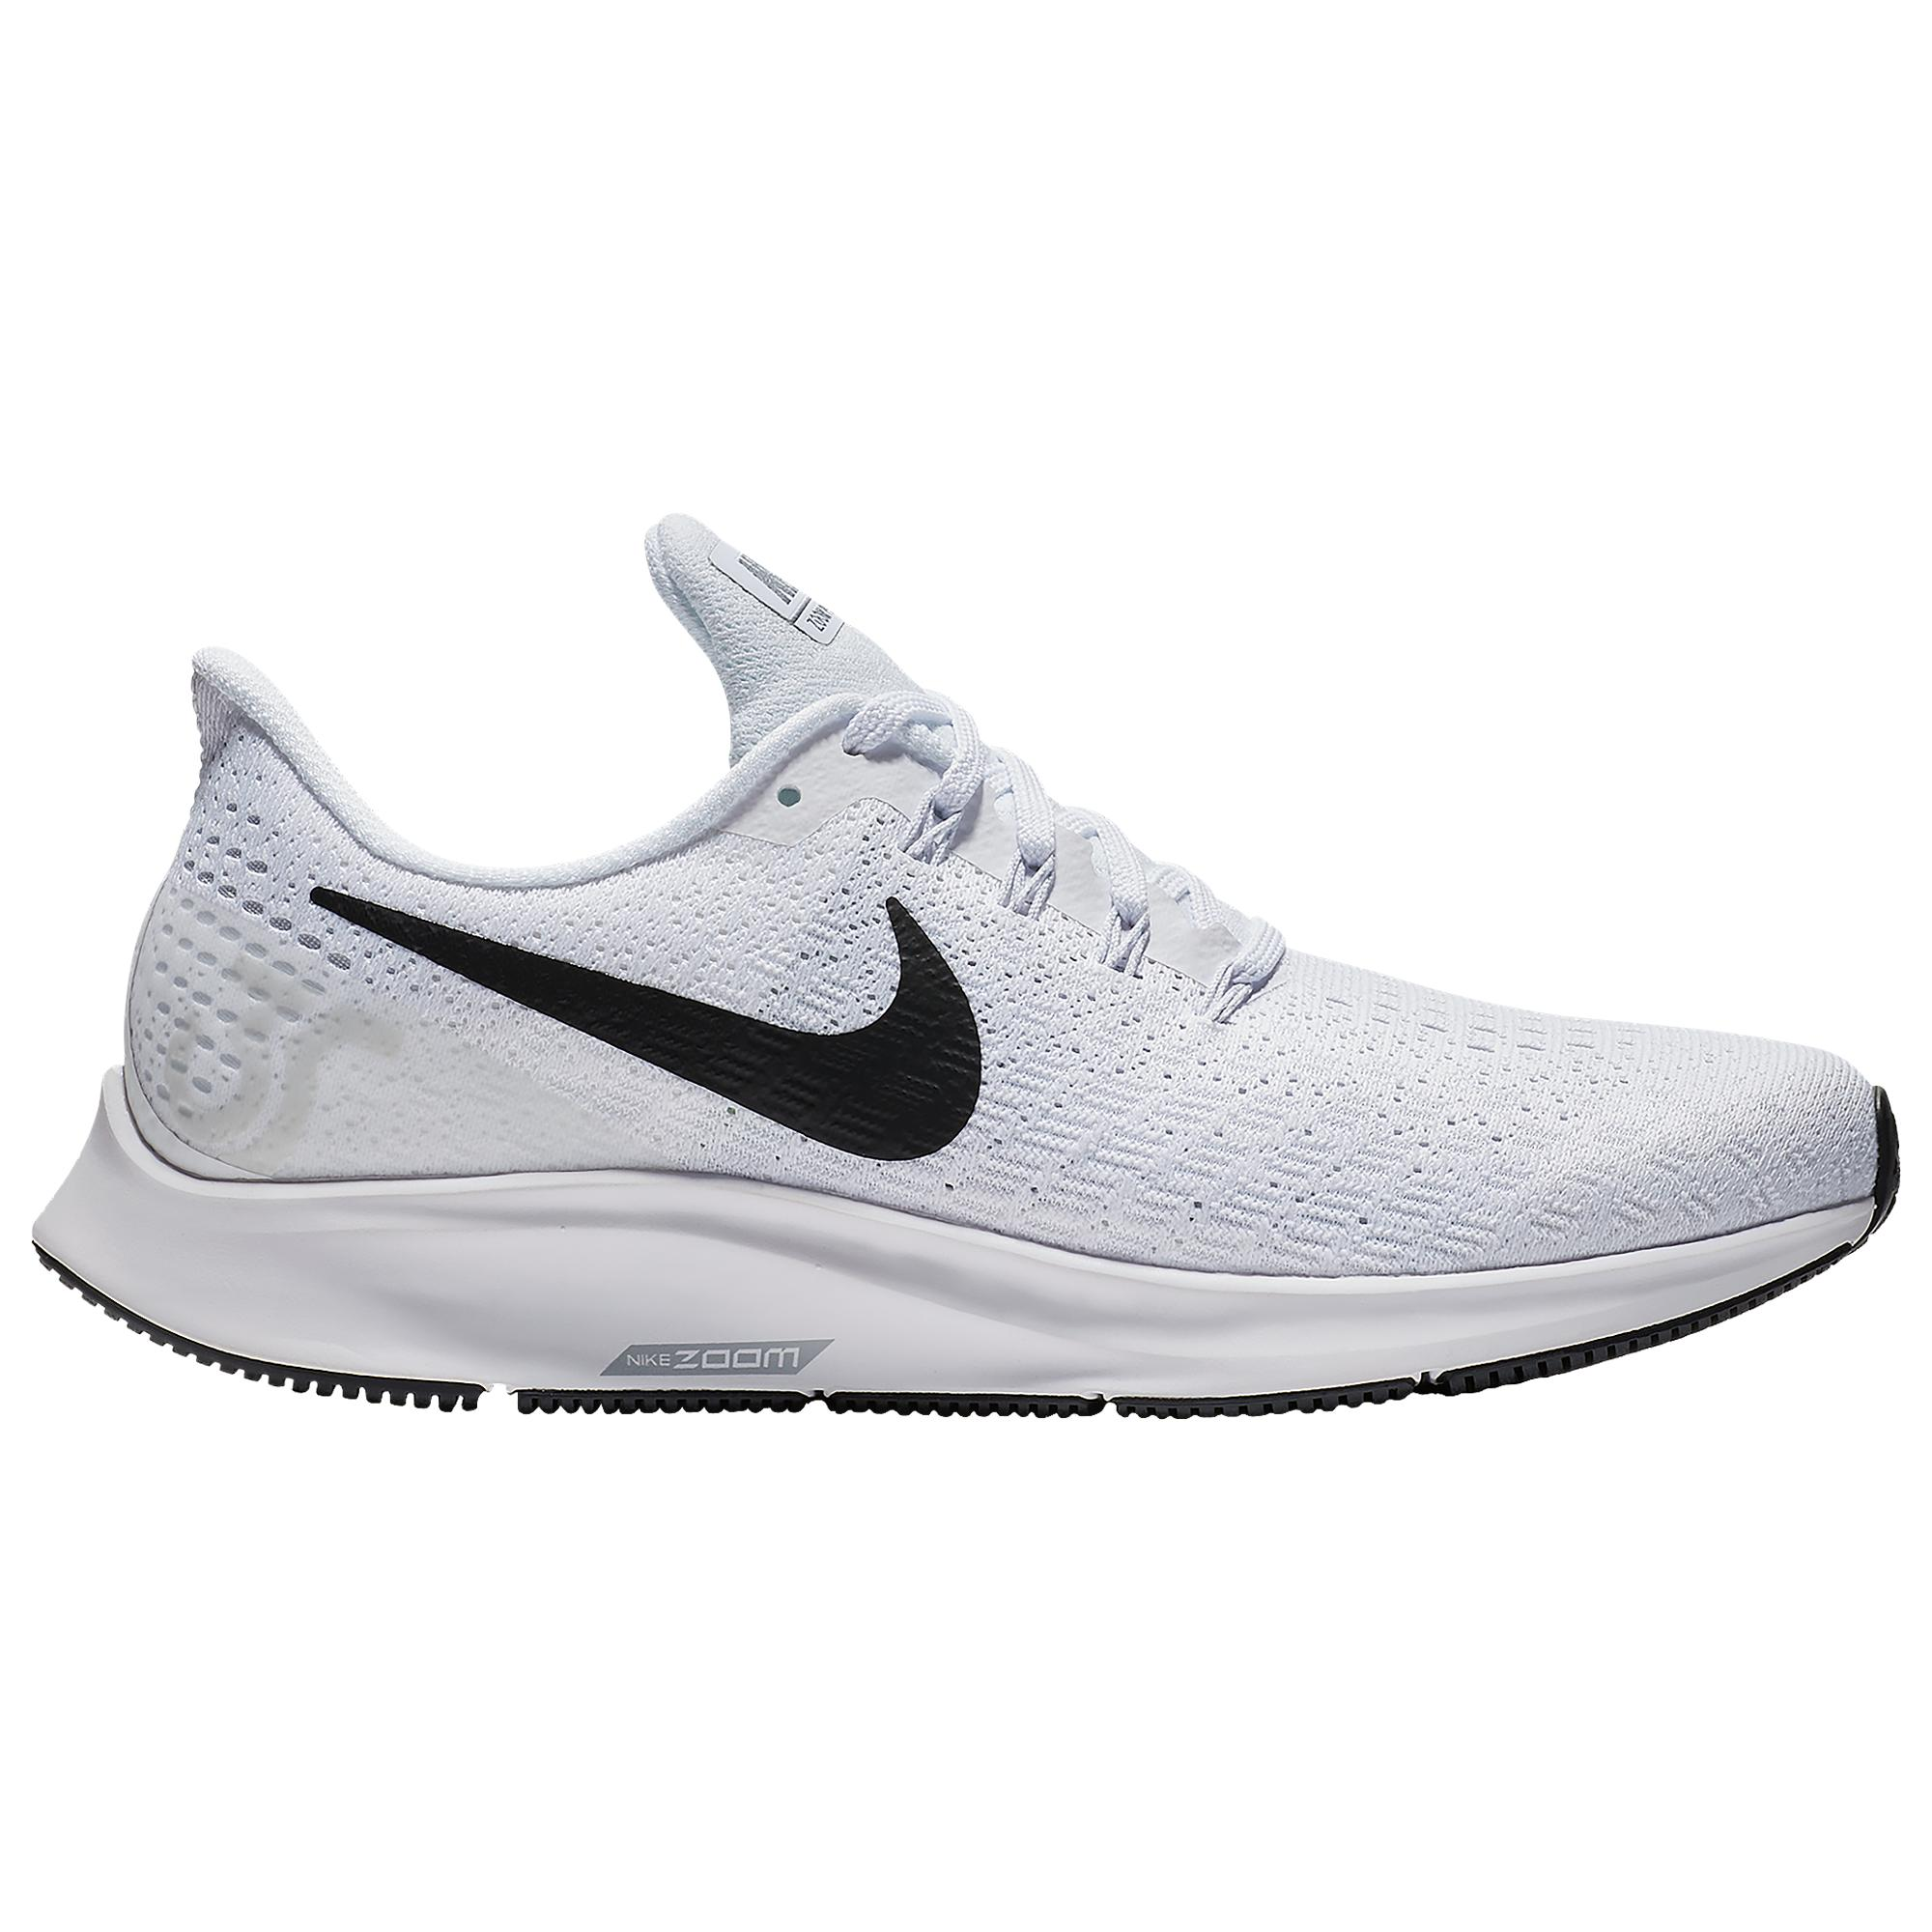 new style 0cc11 225d8 Nike Air Zoom Pegasus 35 in White - Lyst